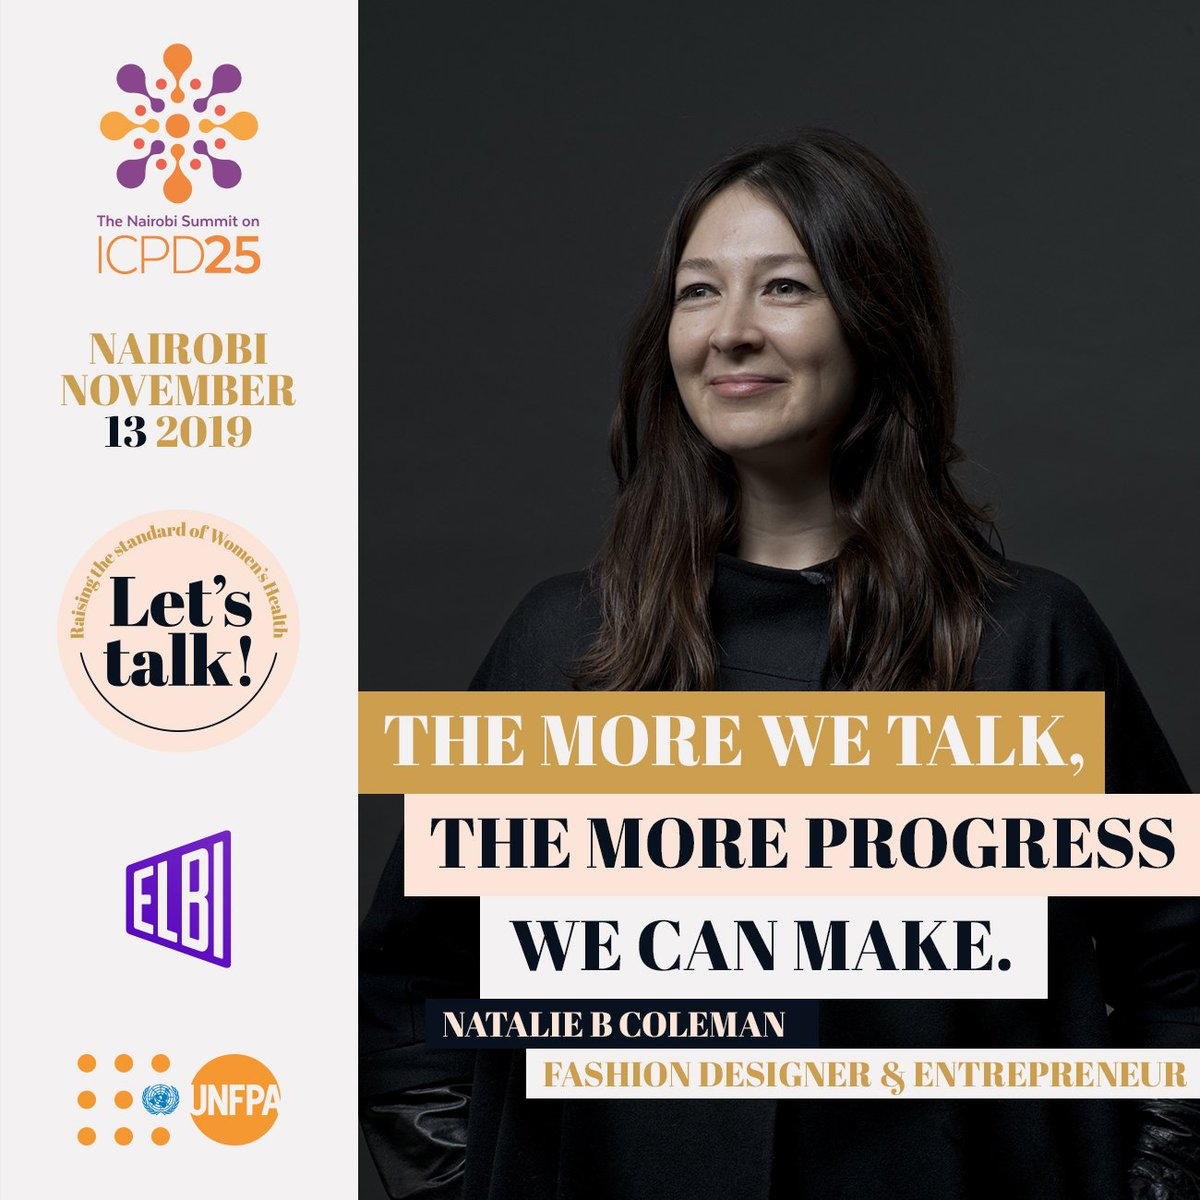 @follybah @AJEnglish Our first panellist is @nataliebcoleman, the Irish fashion designer that partnered with the @UNFPA on a collaborative collection, SISTERS, to celebrate the coming together of women to mobilise and build support systems that help fulfil the promise of rights and choices for all. https://t.co/ovNtTzgmwH